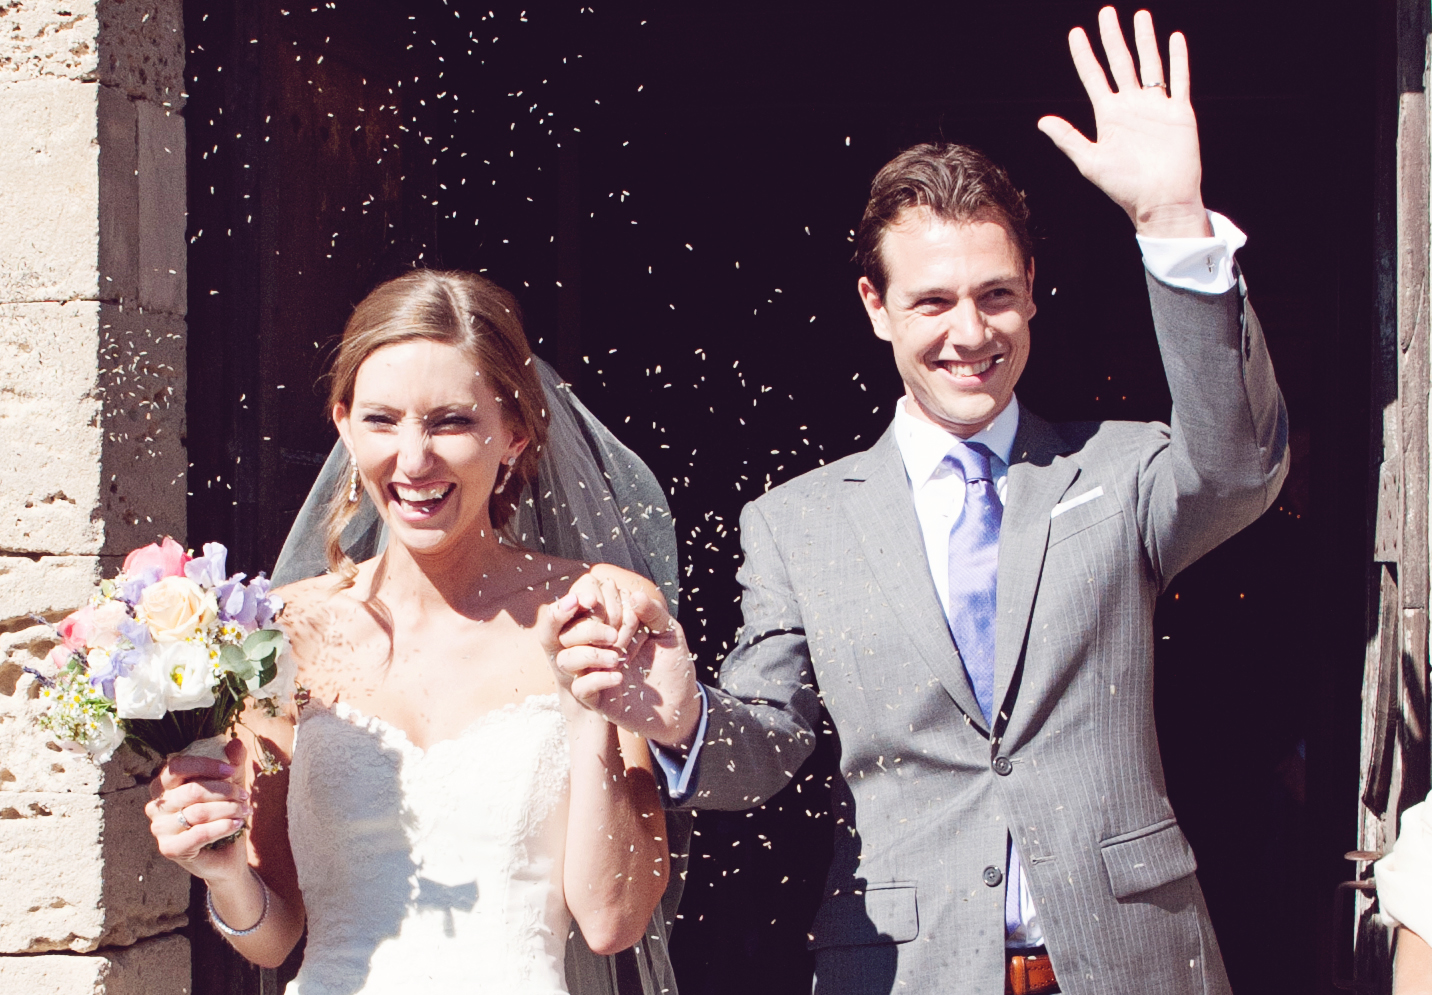 Lavender Shower — They're Married!